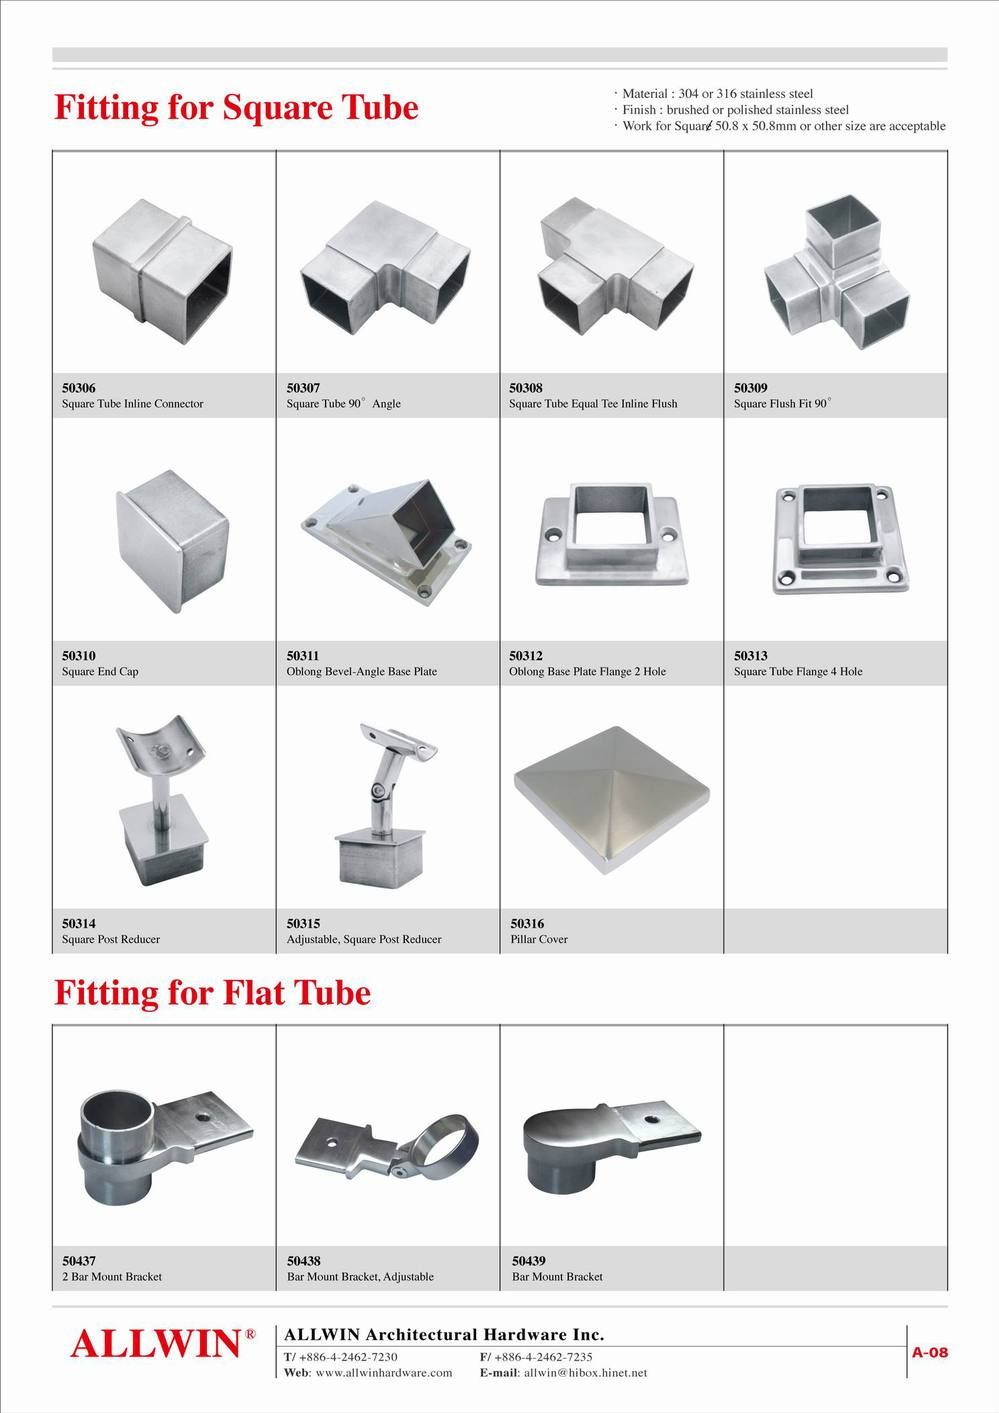 45 Degree Stainless Steel Angle Round tube Floor Flange